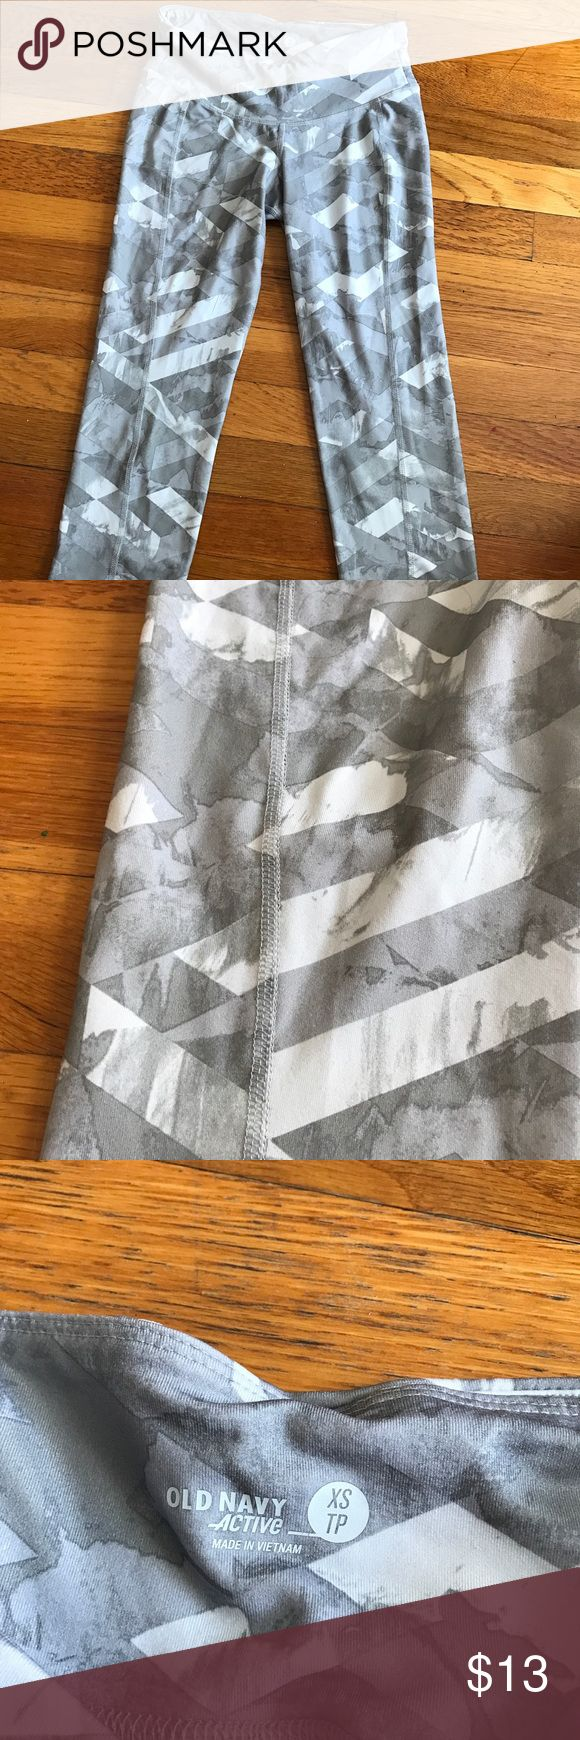 Lightly worn Mossimo patterned athletic leggings Only worn a few times. Cropped Leggings. Not see through, no rips, holes or stains. Mossimo Supply Co Pants Leggings